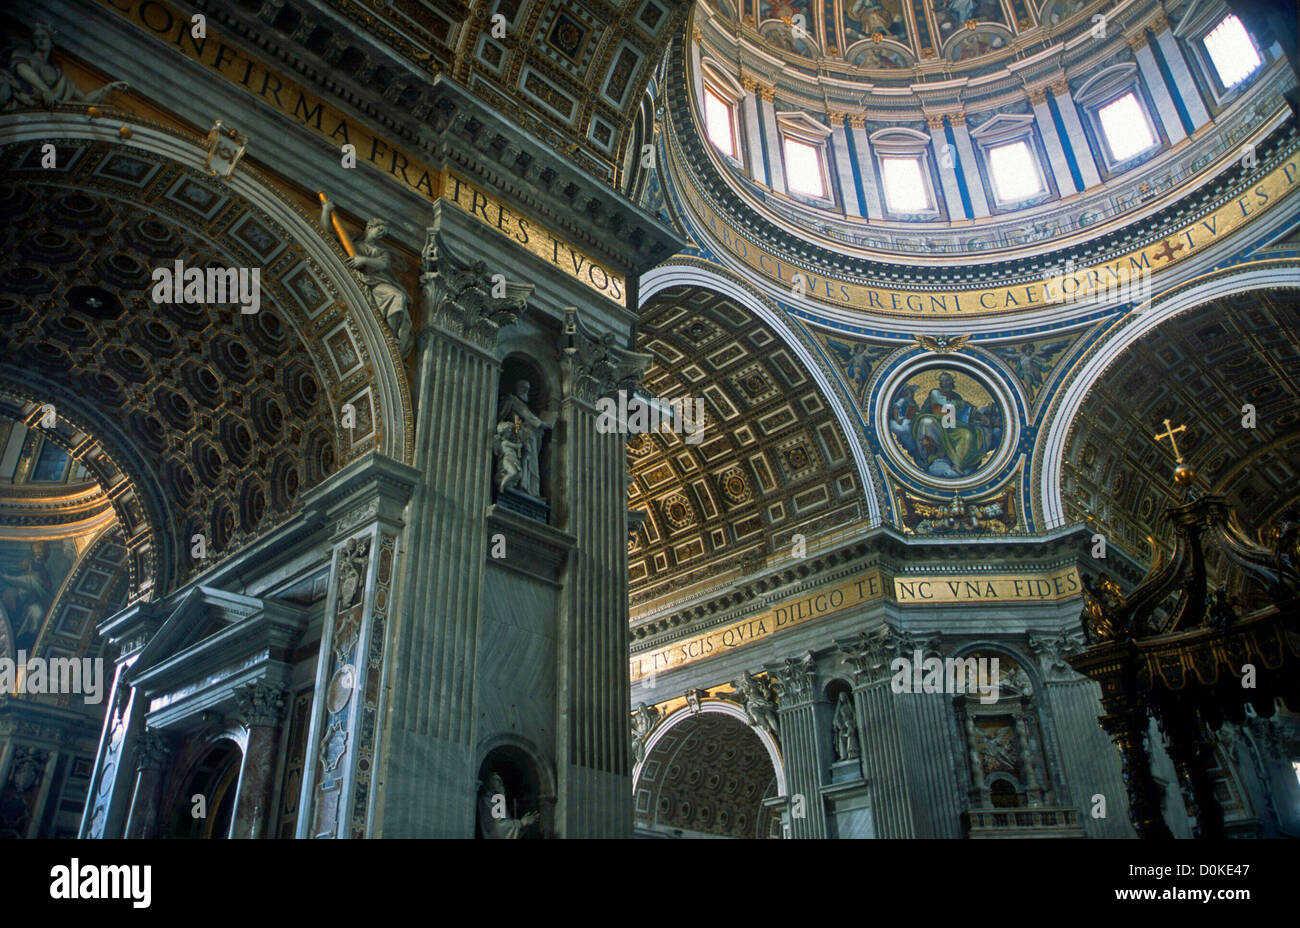 INTERIOR OF ST PETER'S ROME ITALY - Stock Image